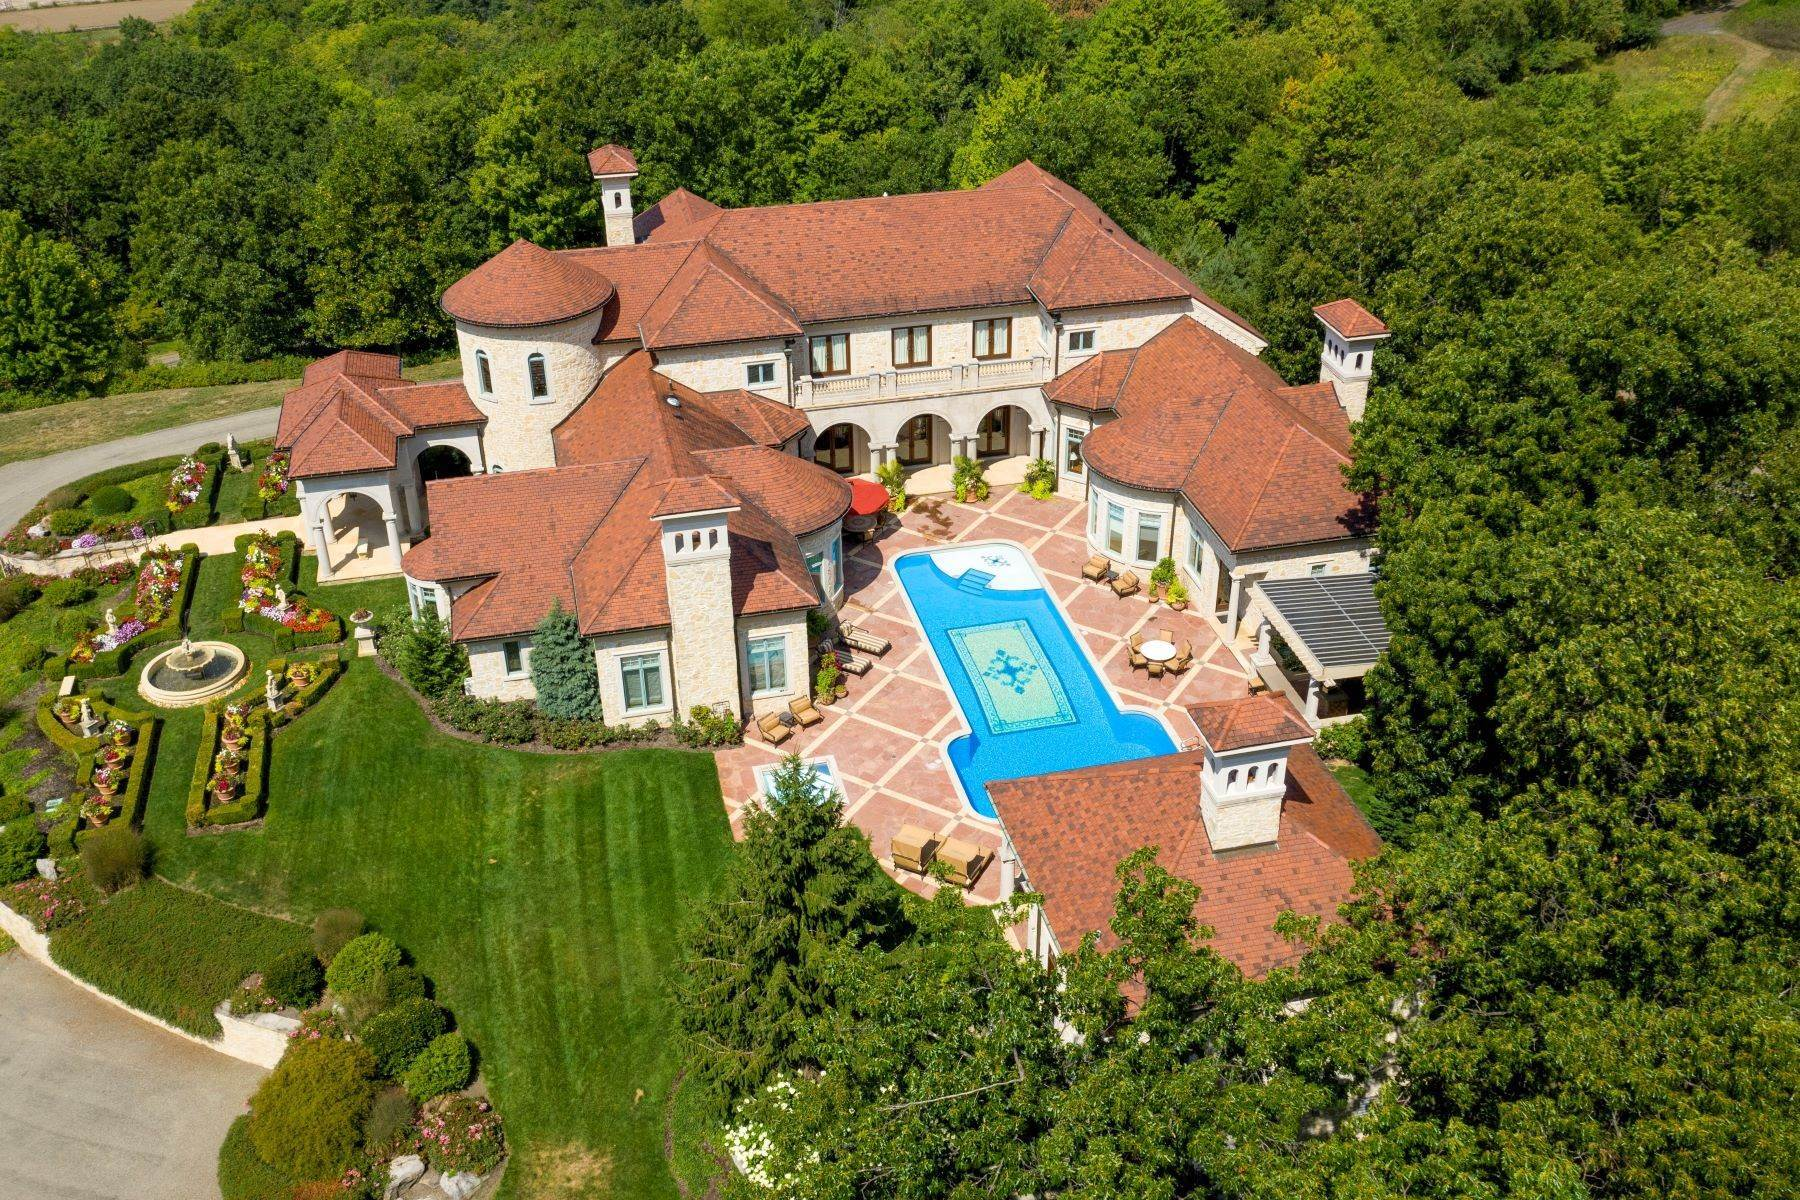 Single Family Homes for Sale at Exquisite Italian Renaissance Villa 340 Fox Hunt Road Pittsburgh, Pennsylvania 15238 United States